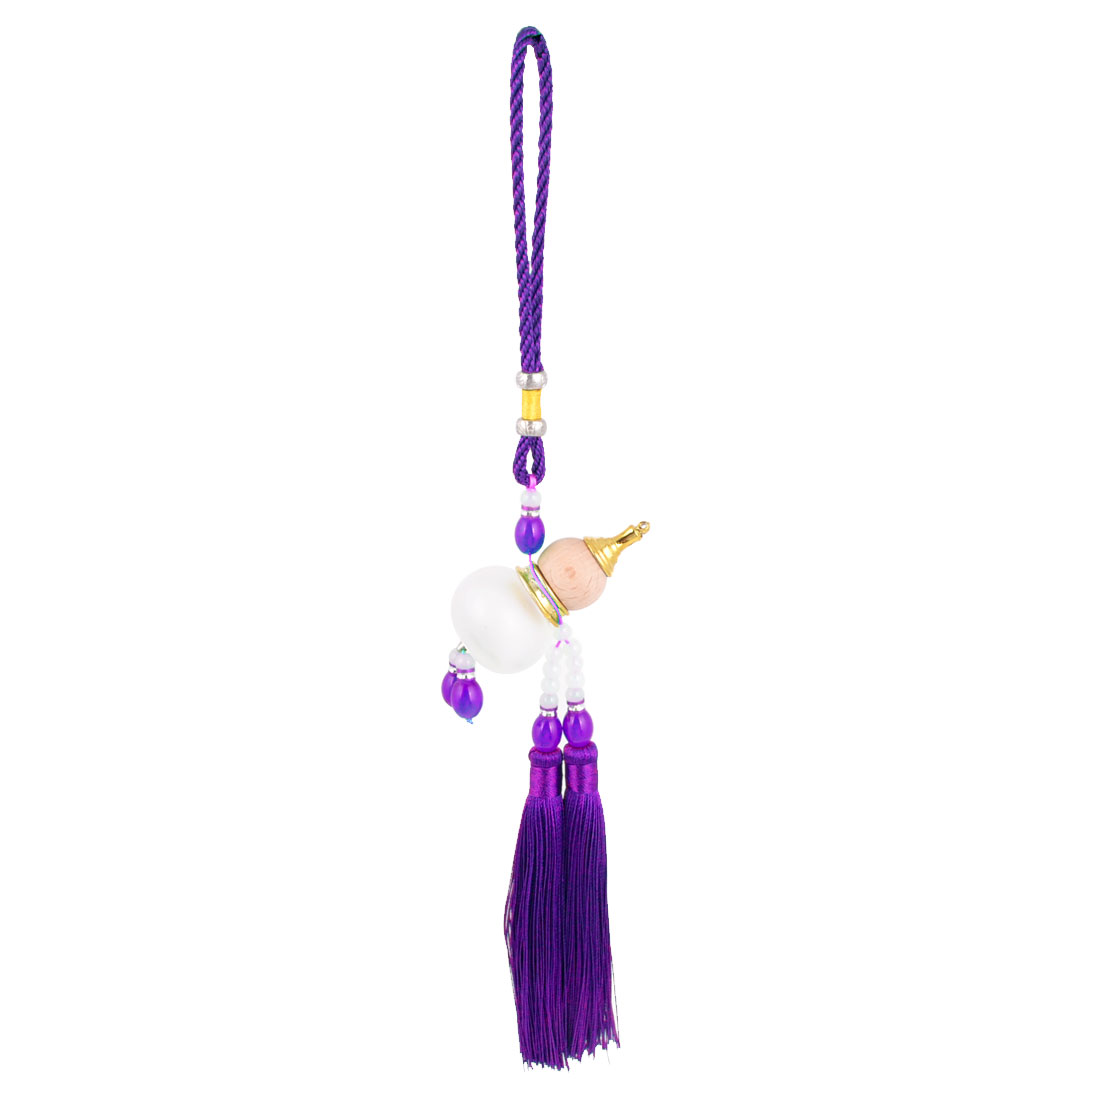 Pendant Tassels White Purple Beads Detail Cucurbit Perfume Bottle Wooden Calabash Car Hanging Decor